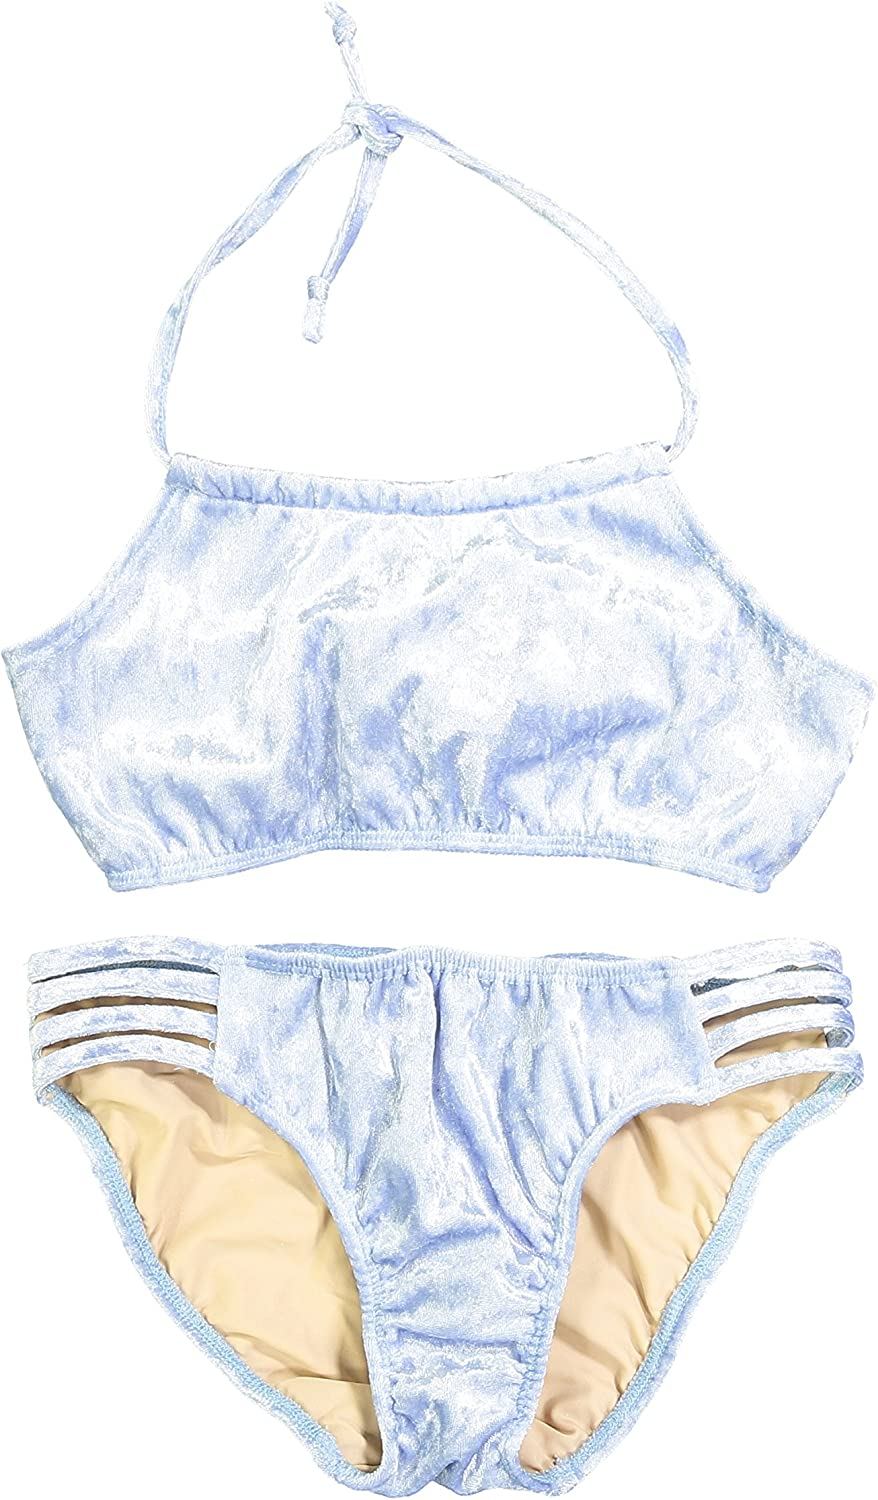 Swimsuit Cheryl Creations Kids Girls Light Blue Cute /& Comfortable Two Piece Velvet Bathing Suit Bikini